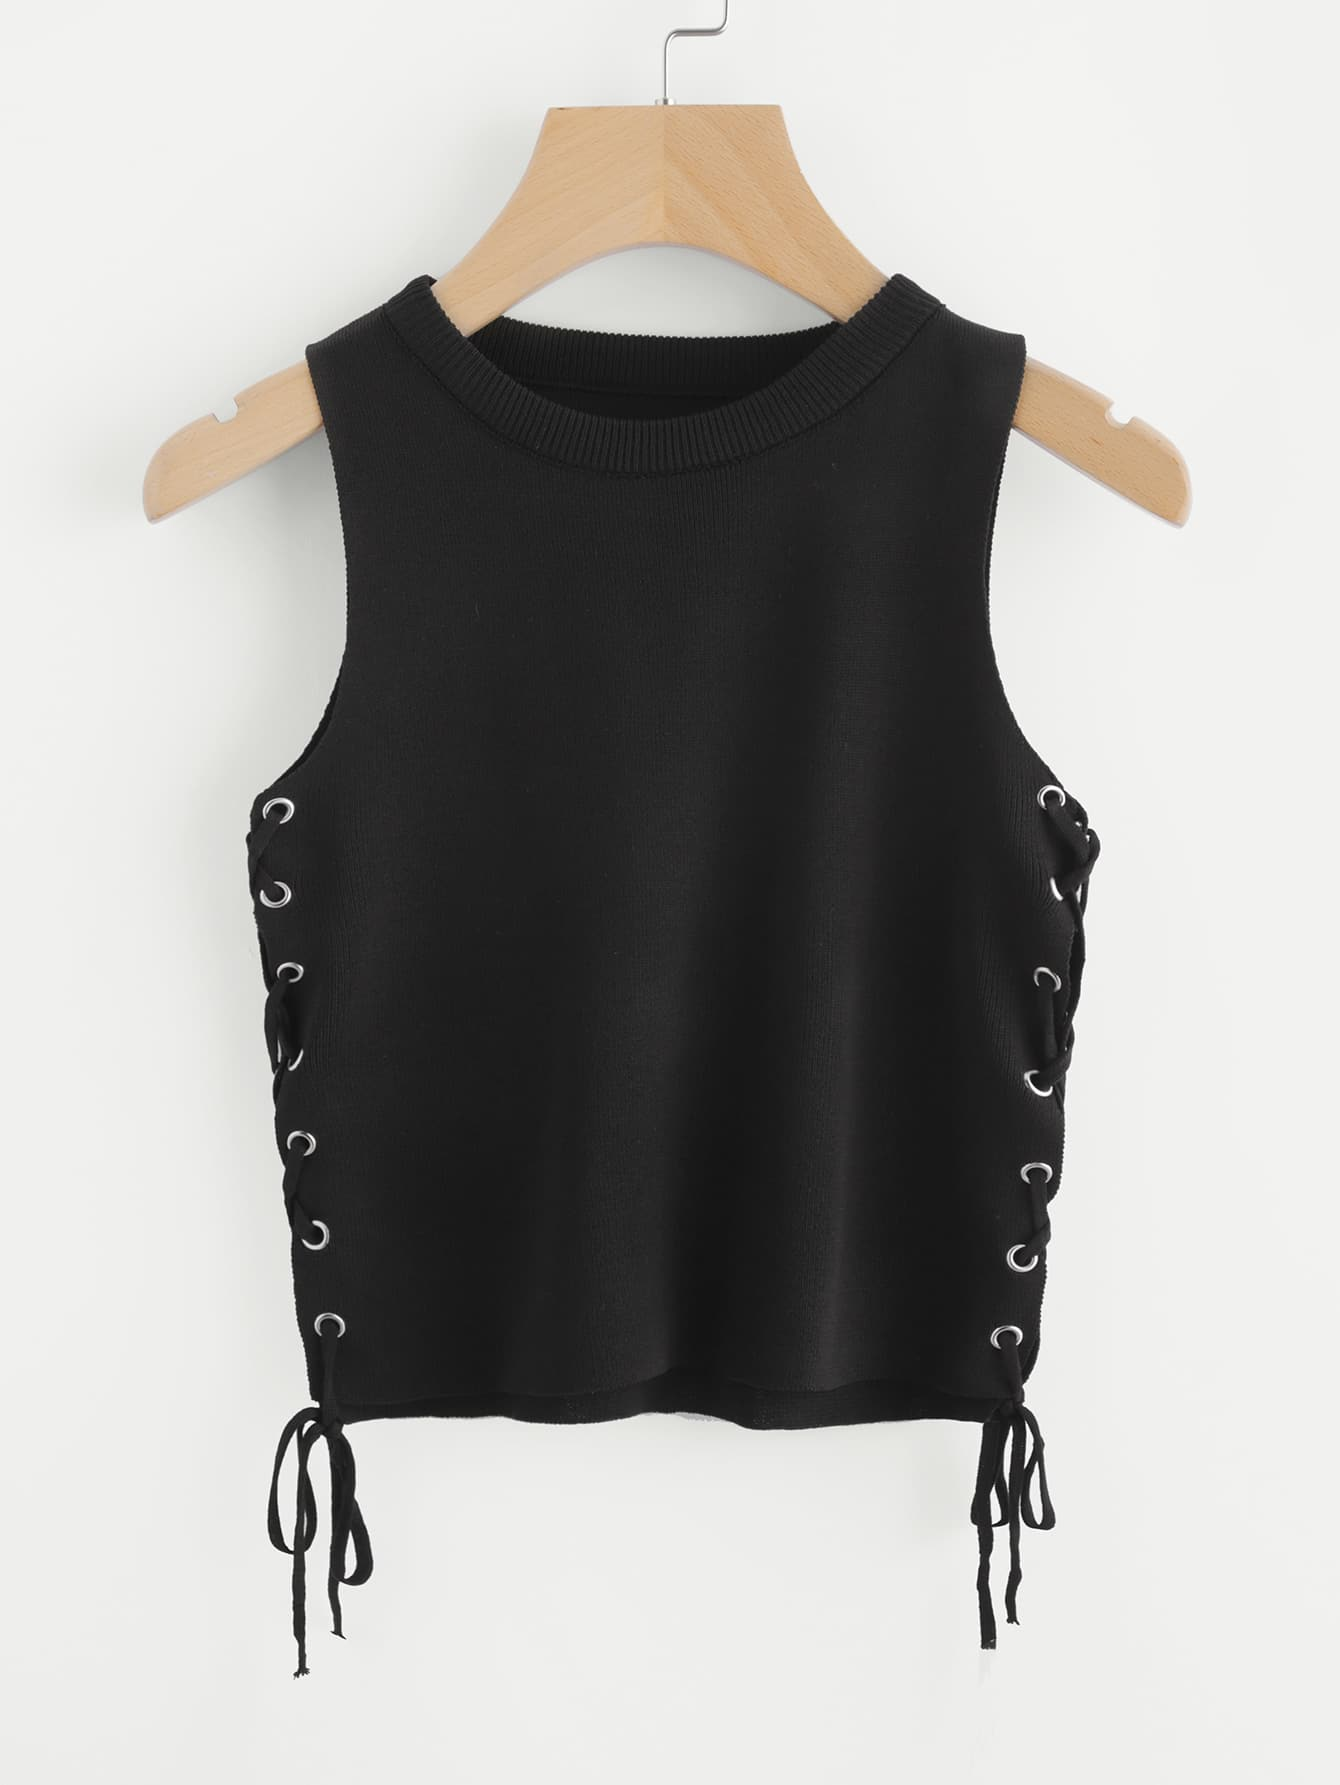 Grommet Lace Up Side Knit Tank Top striped grommet lace up dropped shoulder top